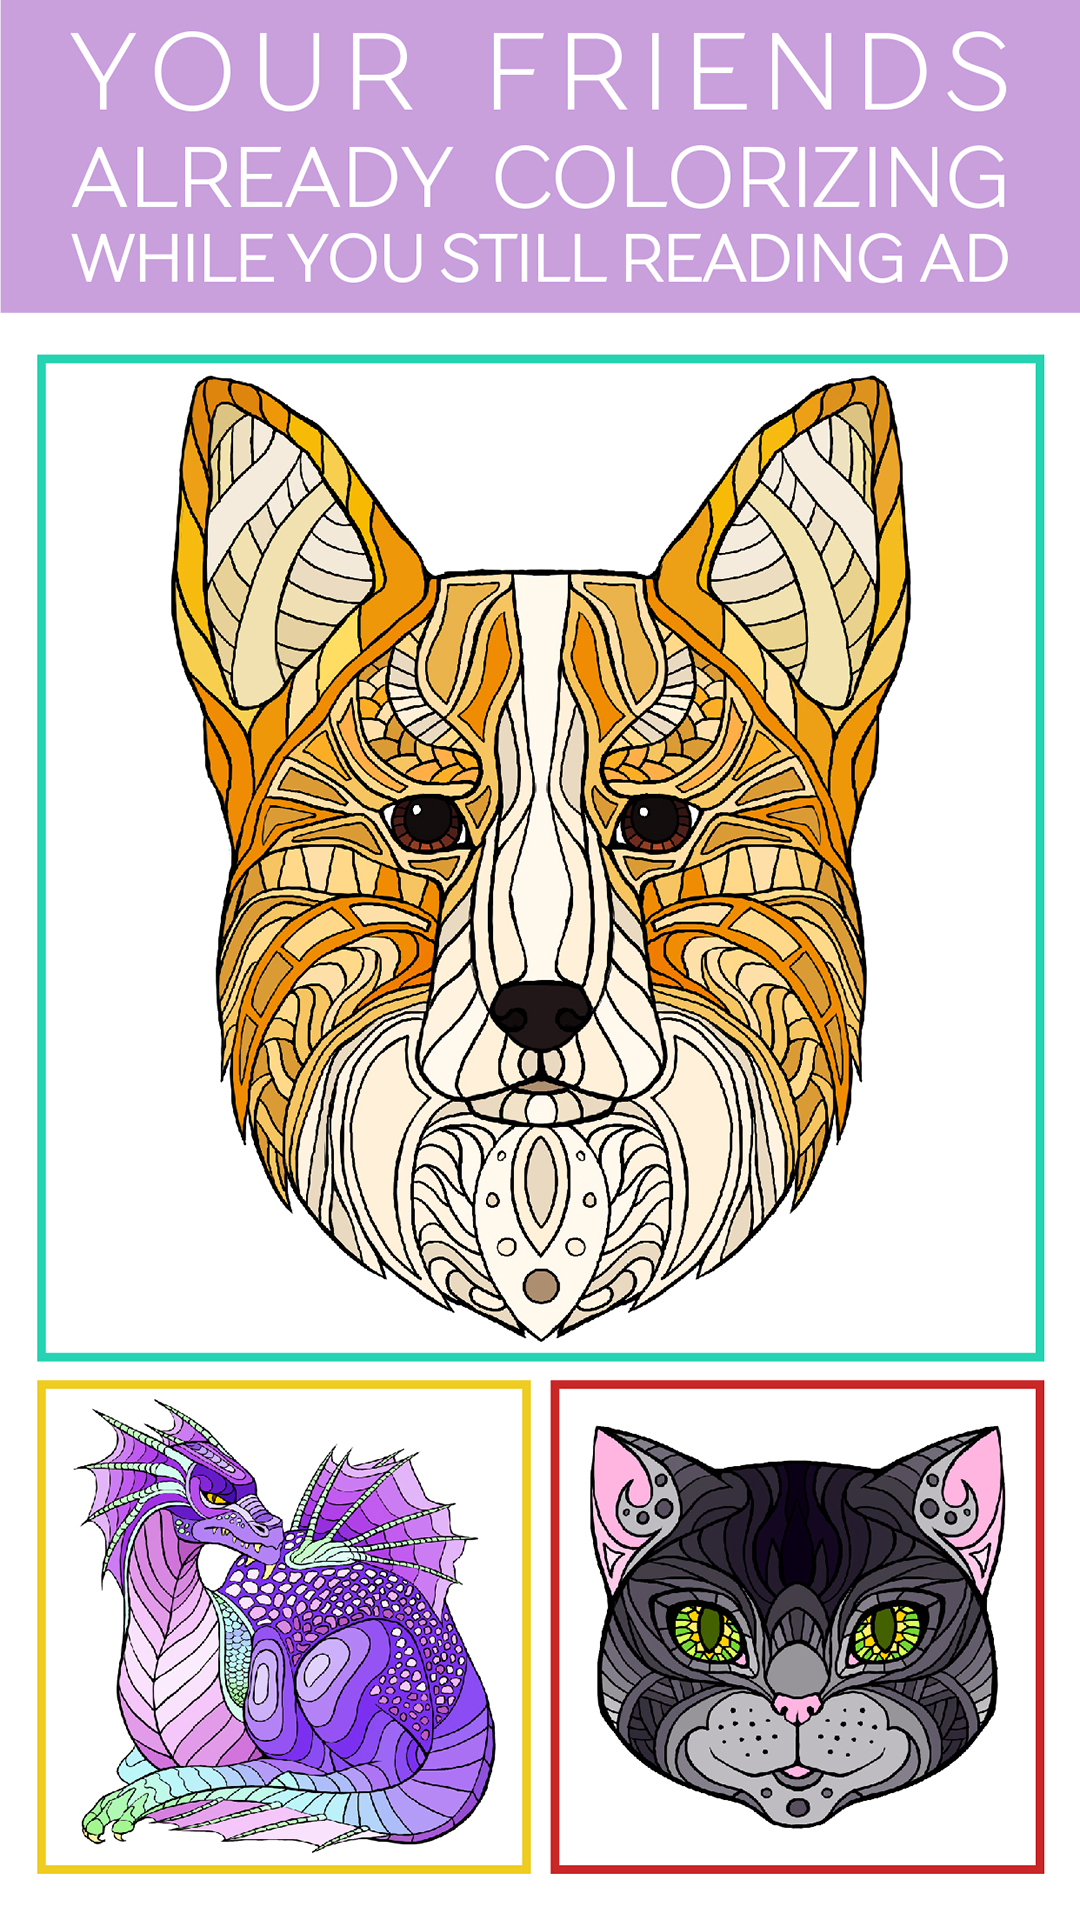 ... Colorfly : Coloring Book for Adults - Free Games screenshot ...